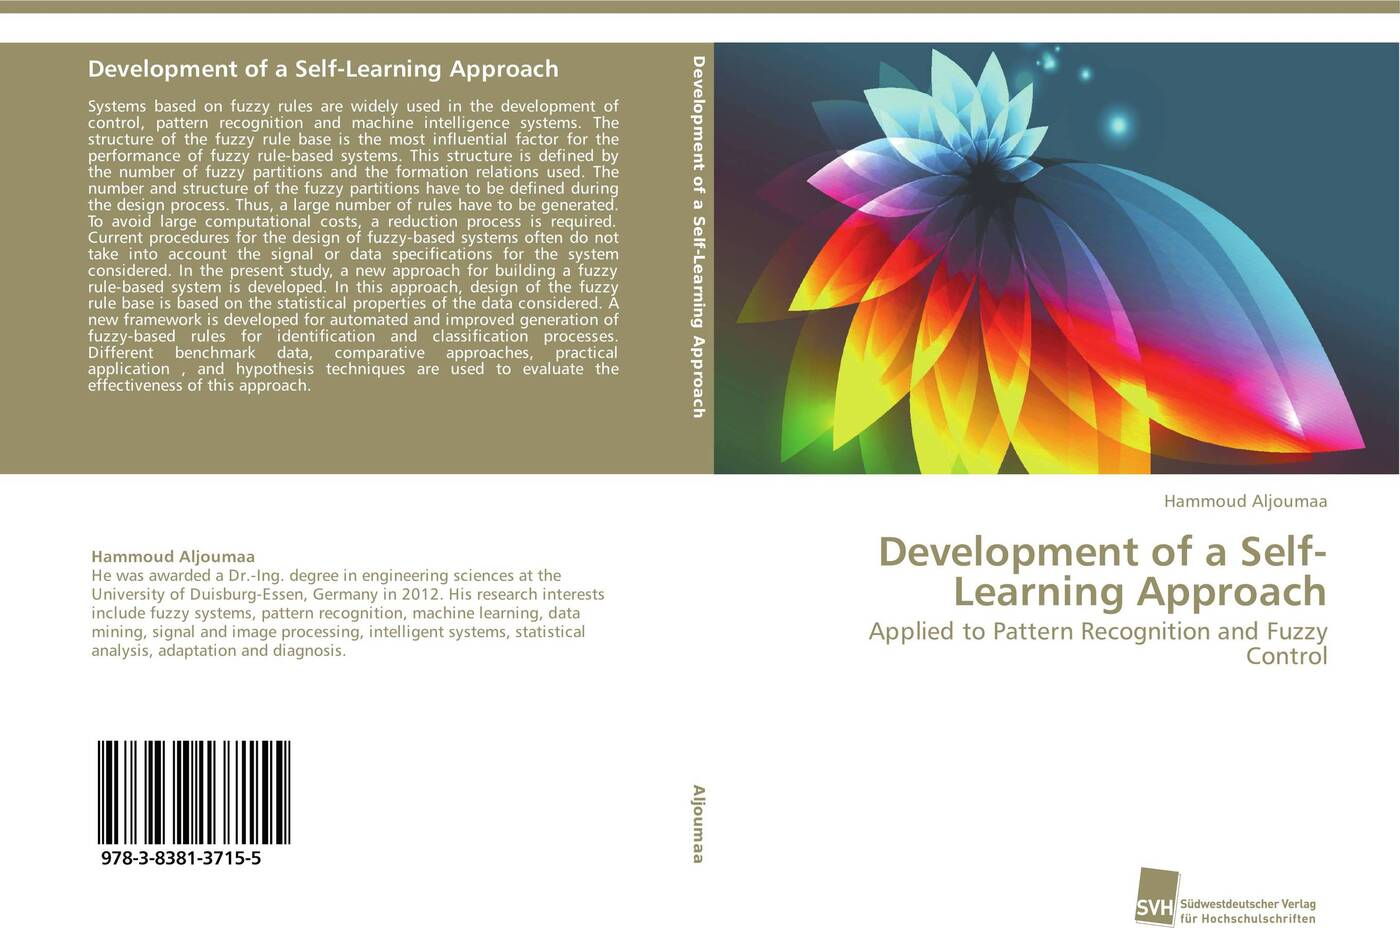 Hammoud Aljoumaa Development of a Self-Learning Approach